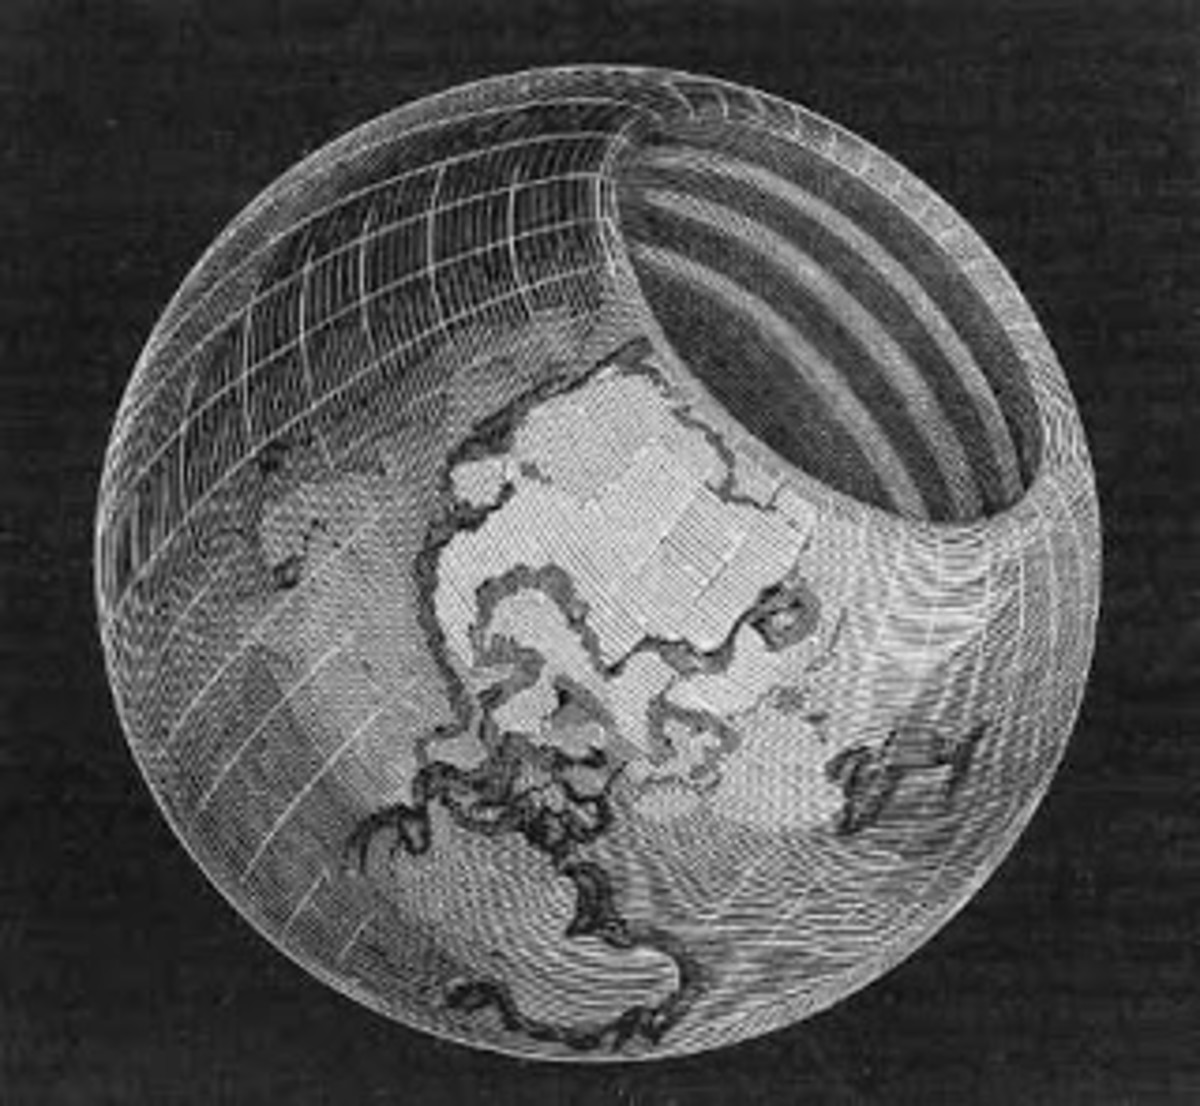 the-strange-tale-of-symmes-hole-and-the-hollow-earth-theory